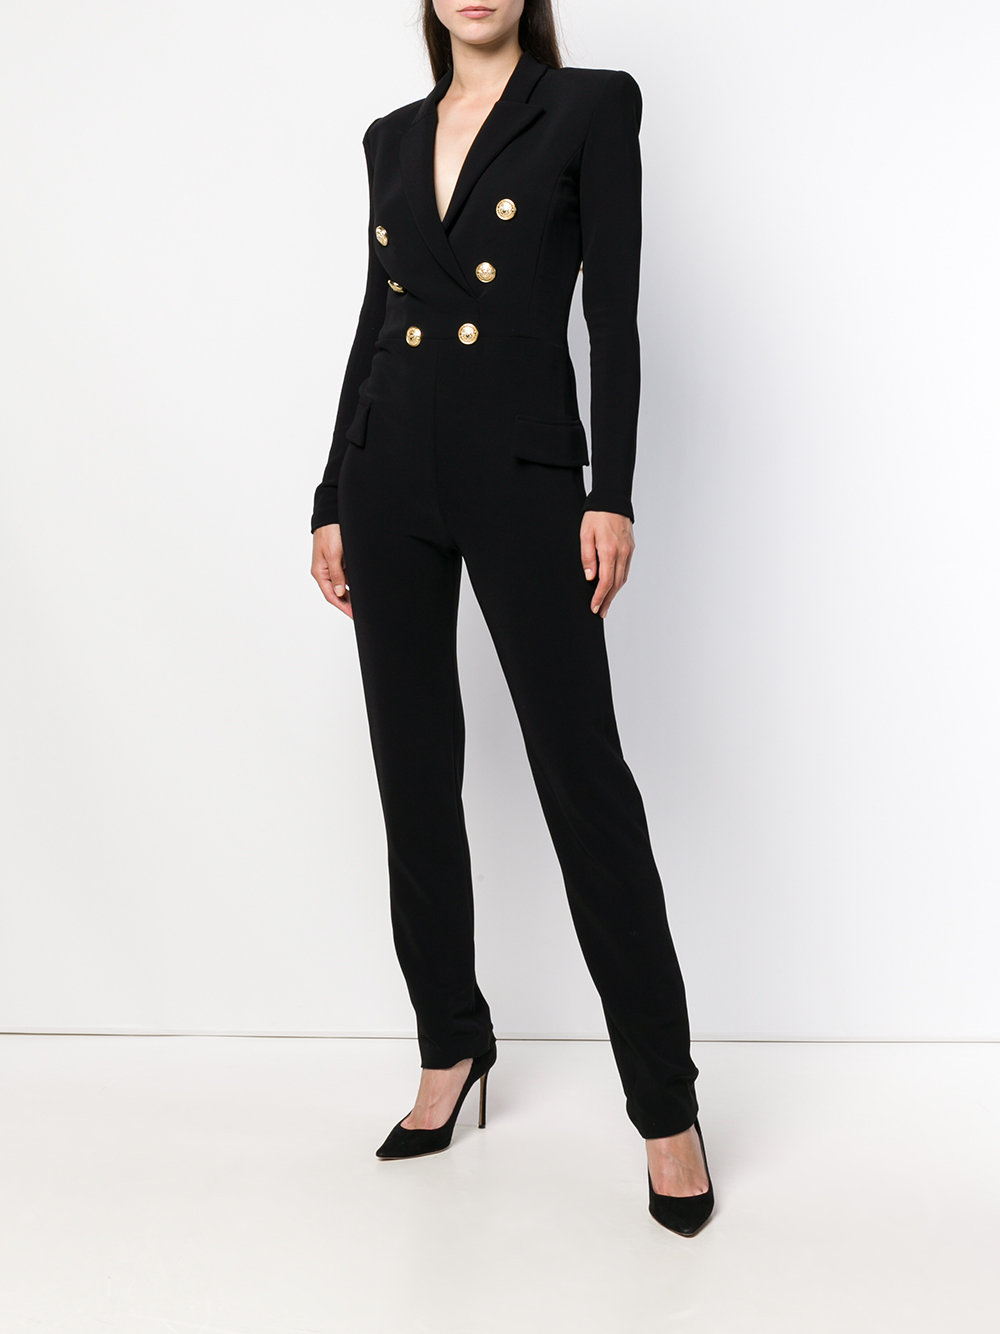 Balmain Double Breasted Jumpsuit - How to Style a Jumpsuit - how to style a romper - how to wear a jumpsuit - the perfect jumpsuit - business jumpsuits